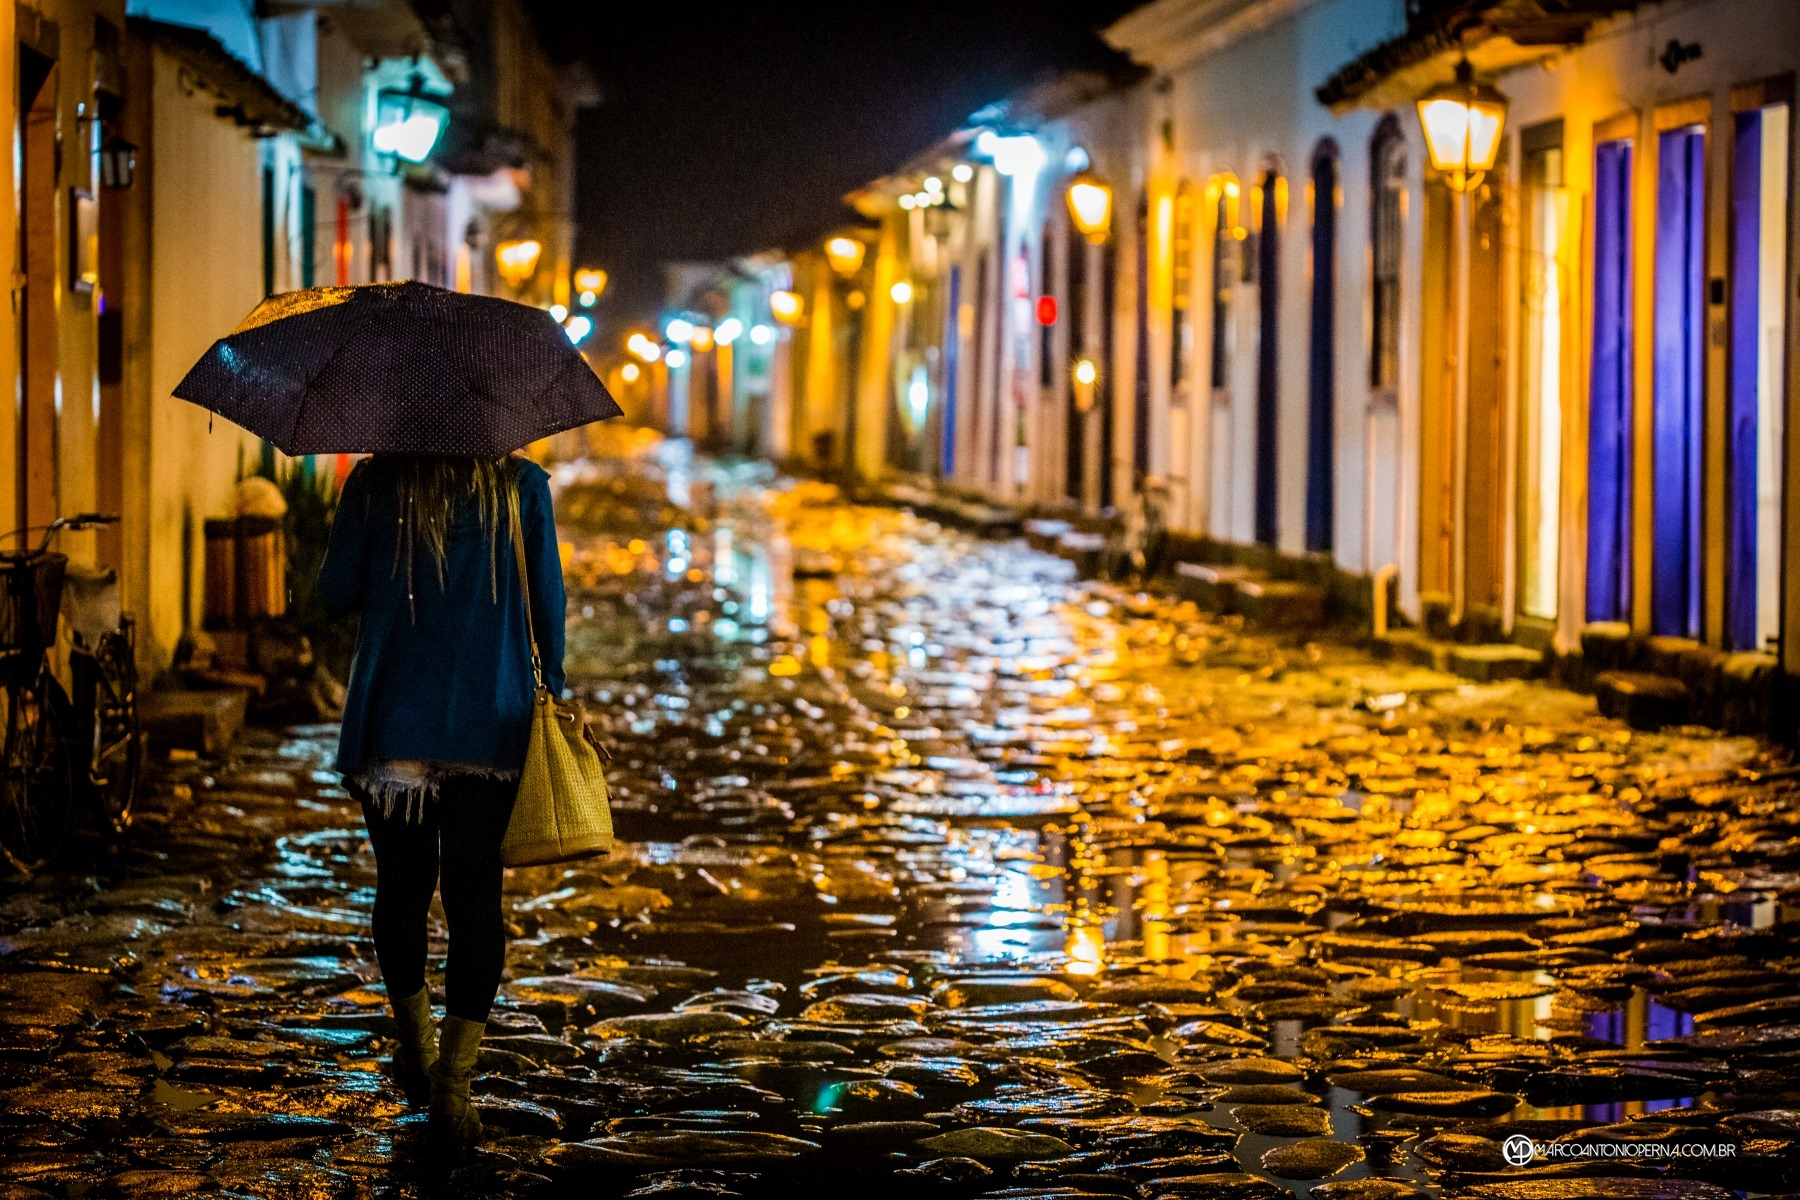 Rainy night in Paraty